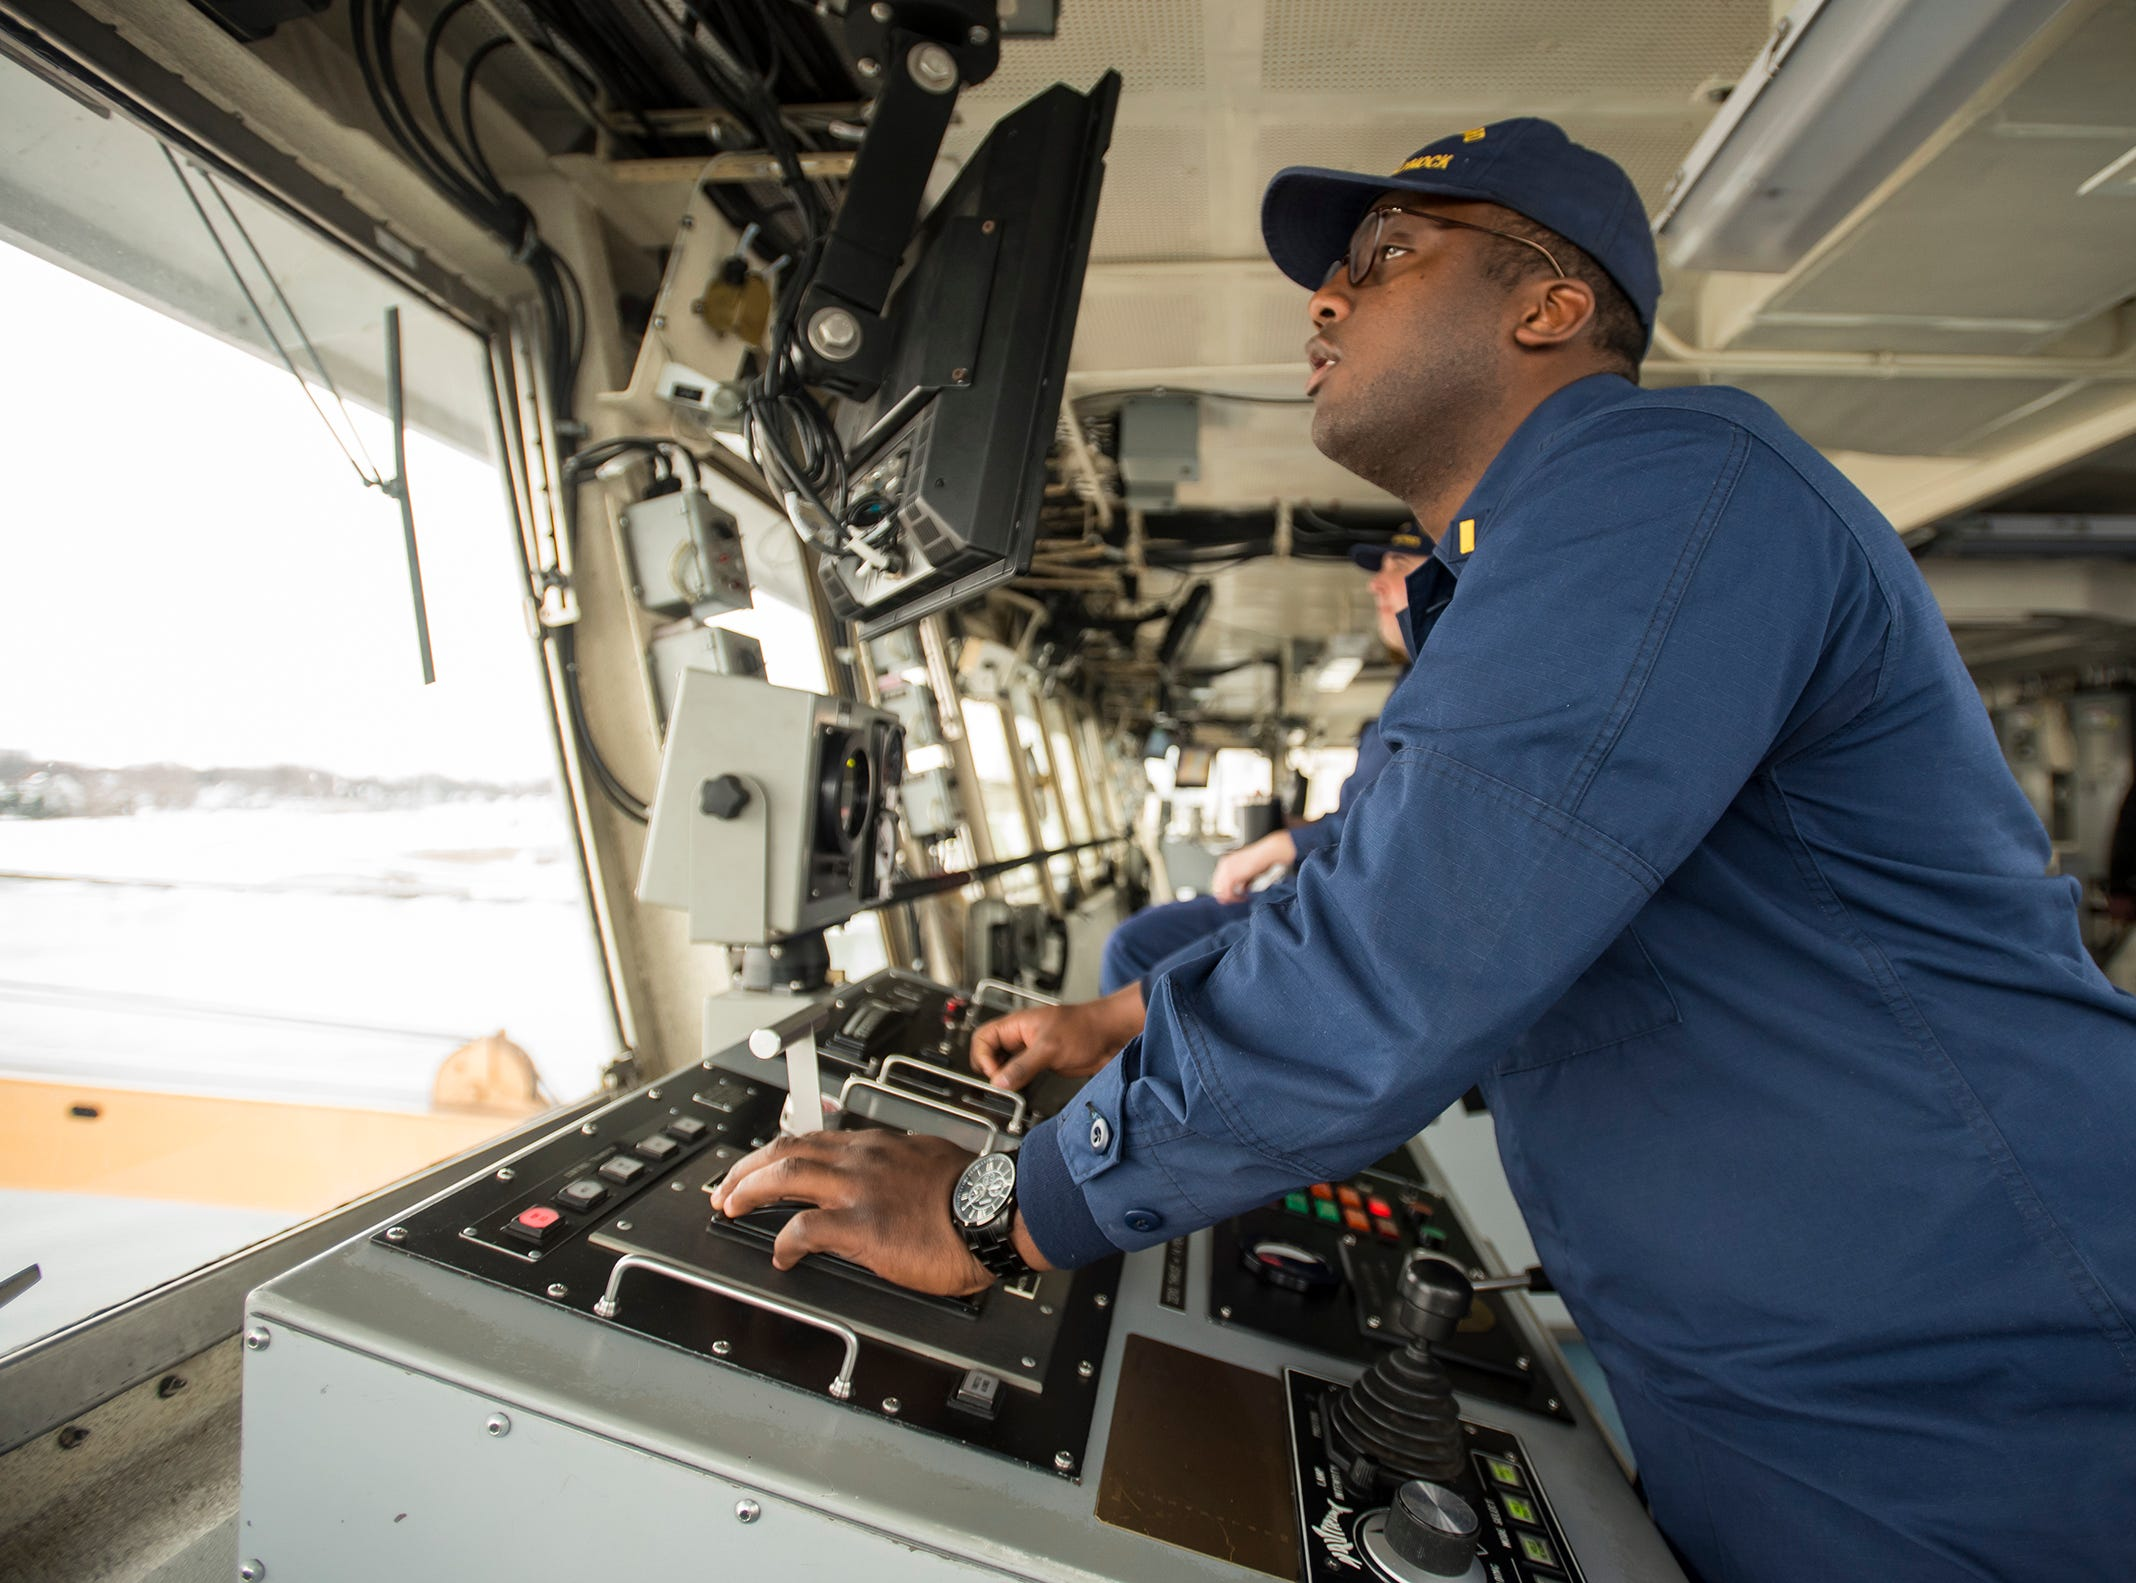 """Ensign Geremy Kendrick controls the Hollyhock using a control panel on the ship's bridge. Kendrick, of Florida, who enlisted right after graduating high school, says joining the Coast Guard was one of the best decisions he's ever made. """"You'll see things that nobody else has seen, and you'll do things that nobody else has done,"""" he said."""